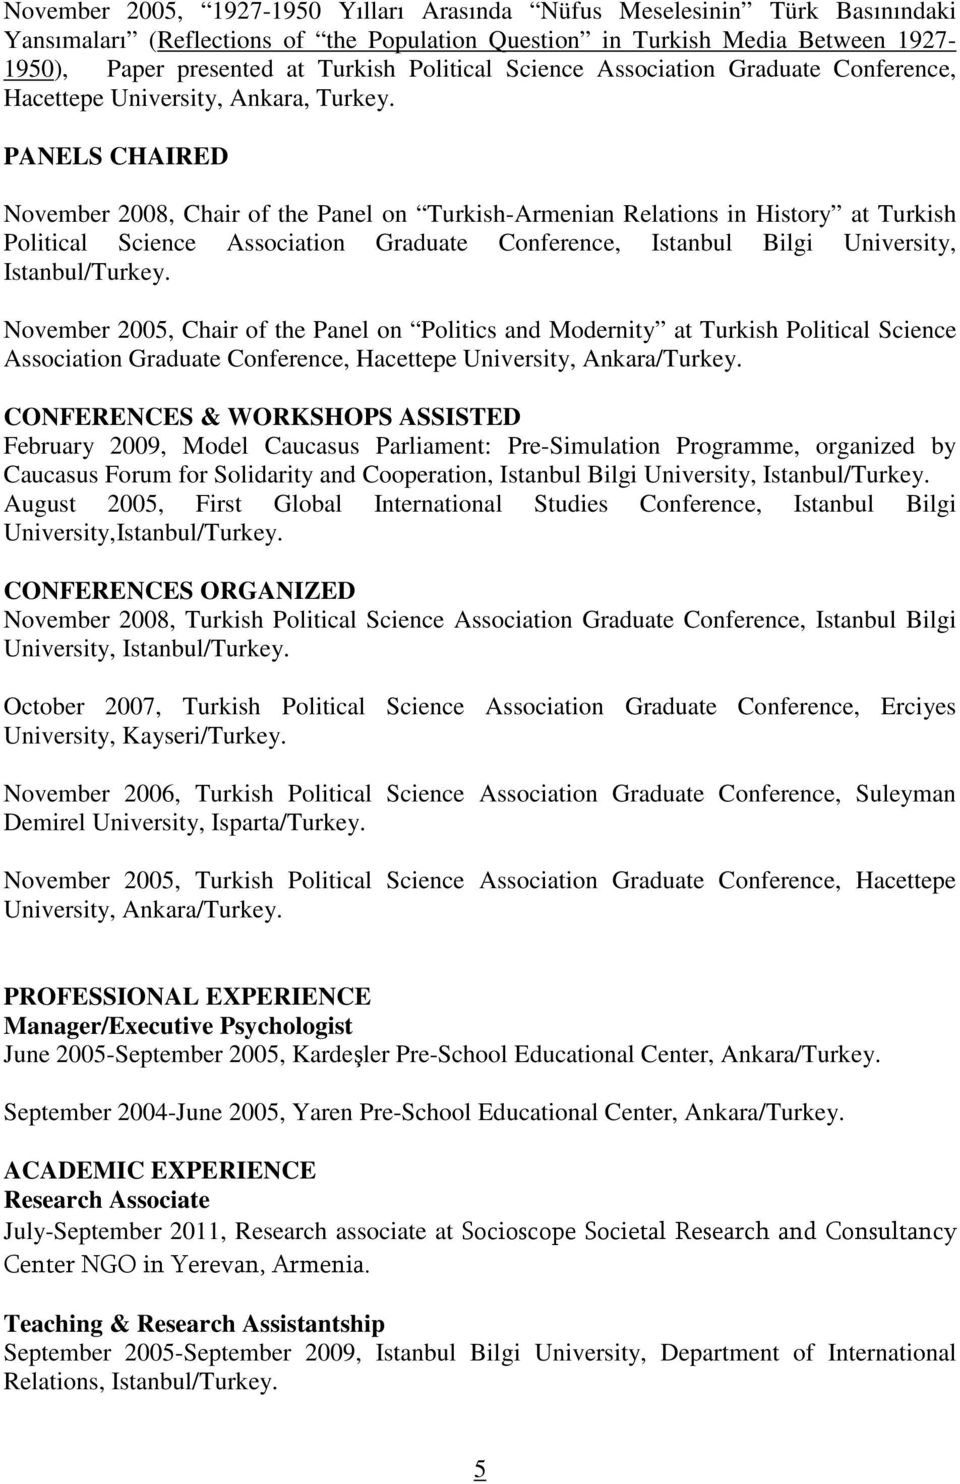 PANELS CHAIRED November 2008, Chair of the Panel on Turkish-Armenian Relations in History at Turkish Political Science Association Graduate Conference, Istanbul Bilgi University, Istanbul/Turkey.